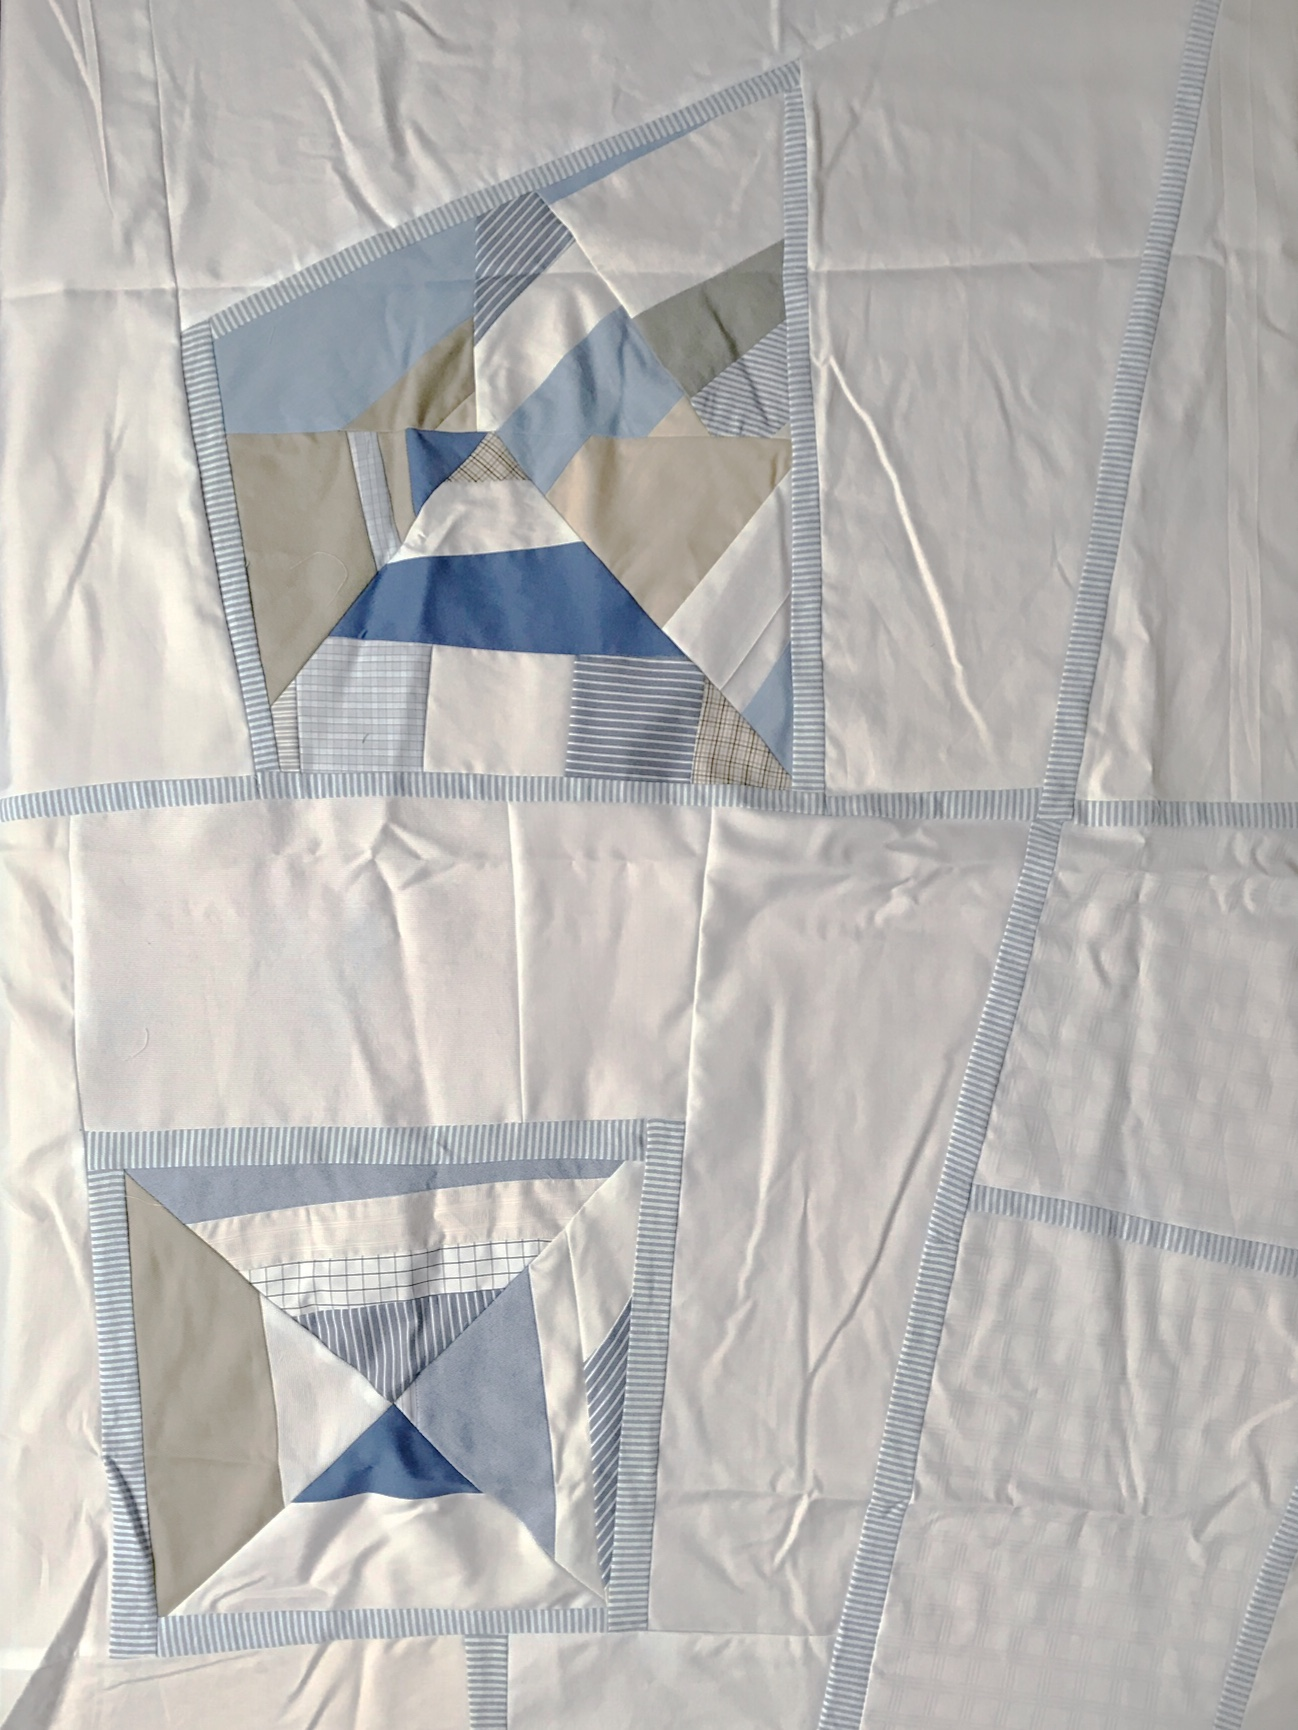 quilt-top-made-from-repurposed-shirts.jpg